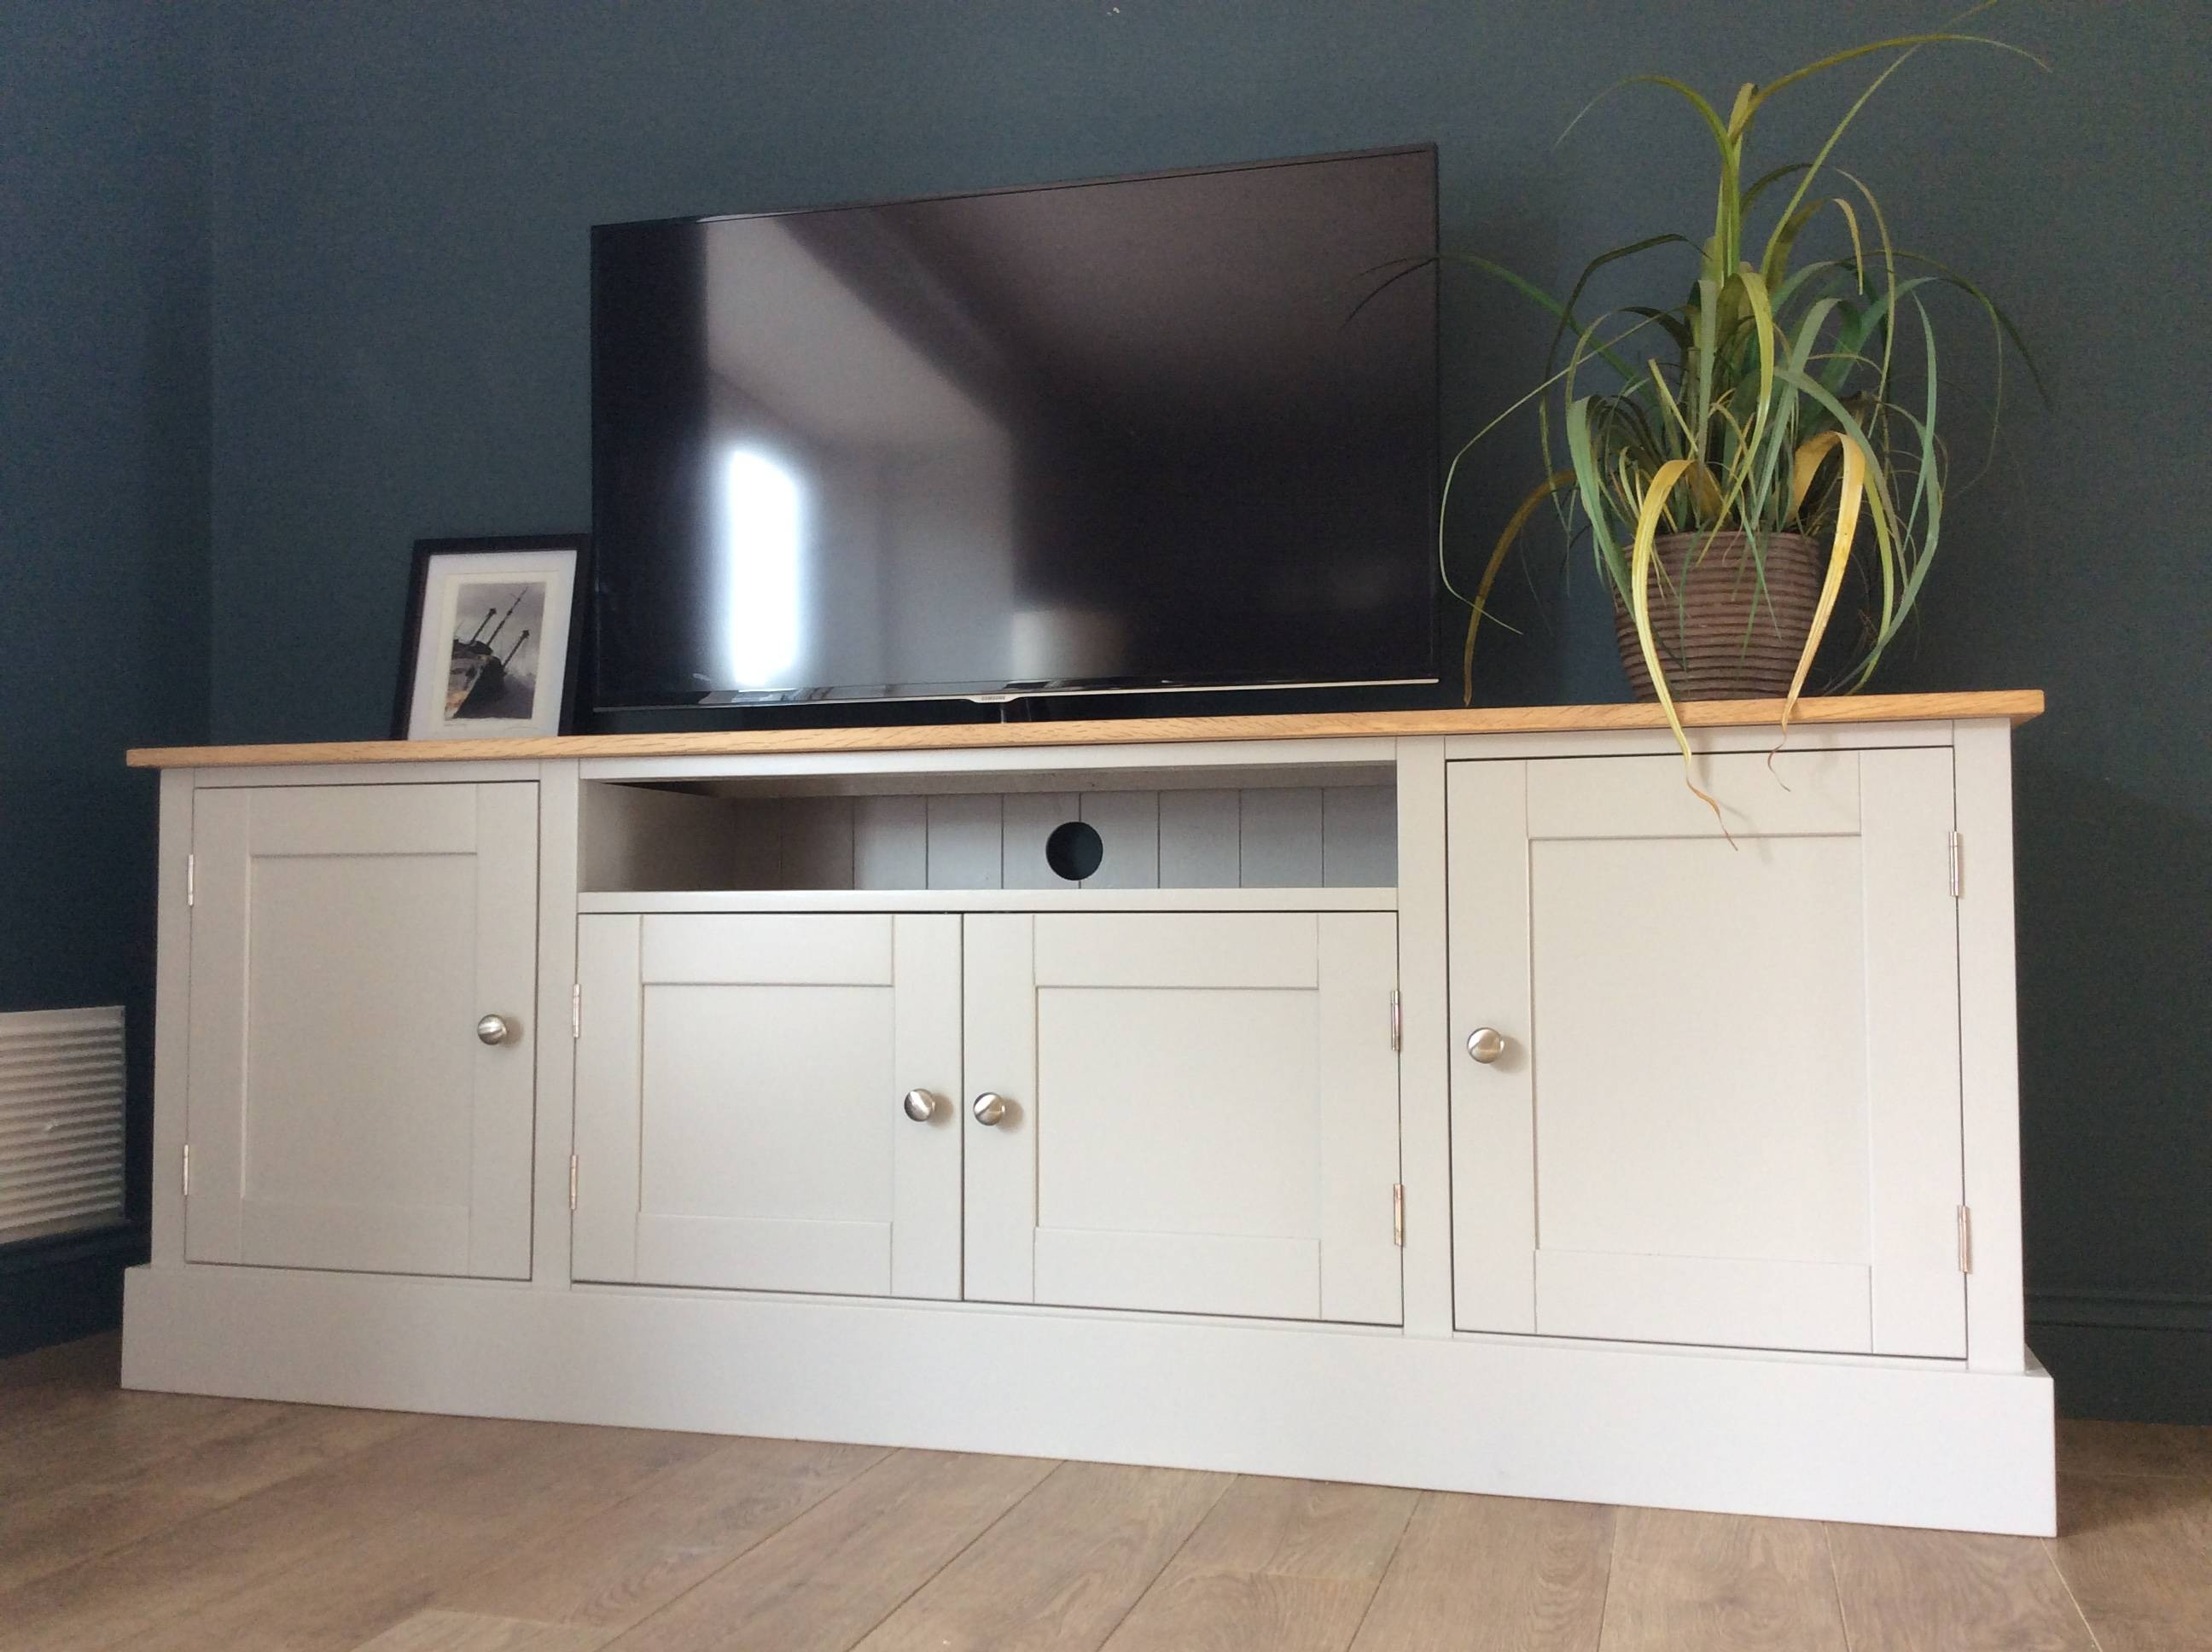 6Ft Solid Pine & Oak Tv Cabinet - Nest At Number 20 regarding Solid Pine Tv Cabinets (Image 1 of 15)